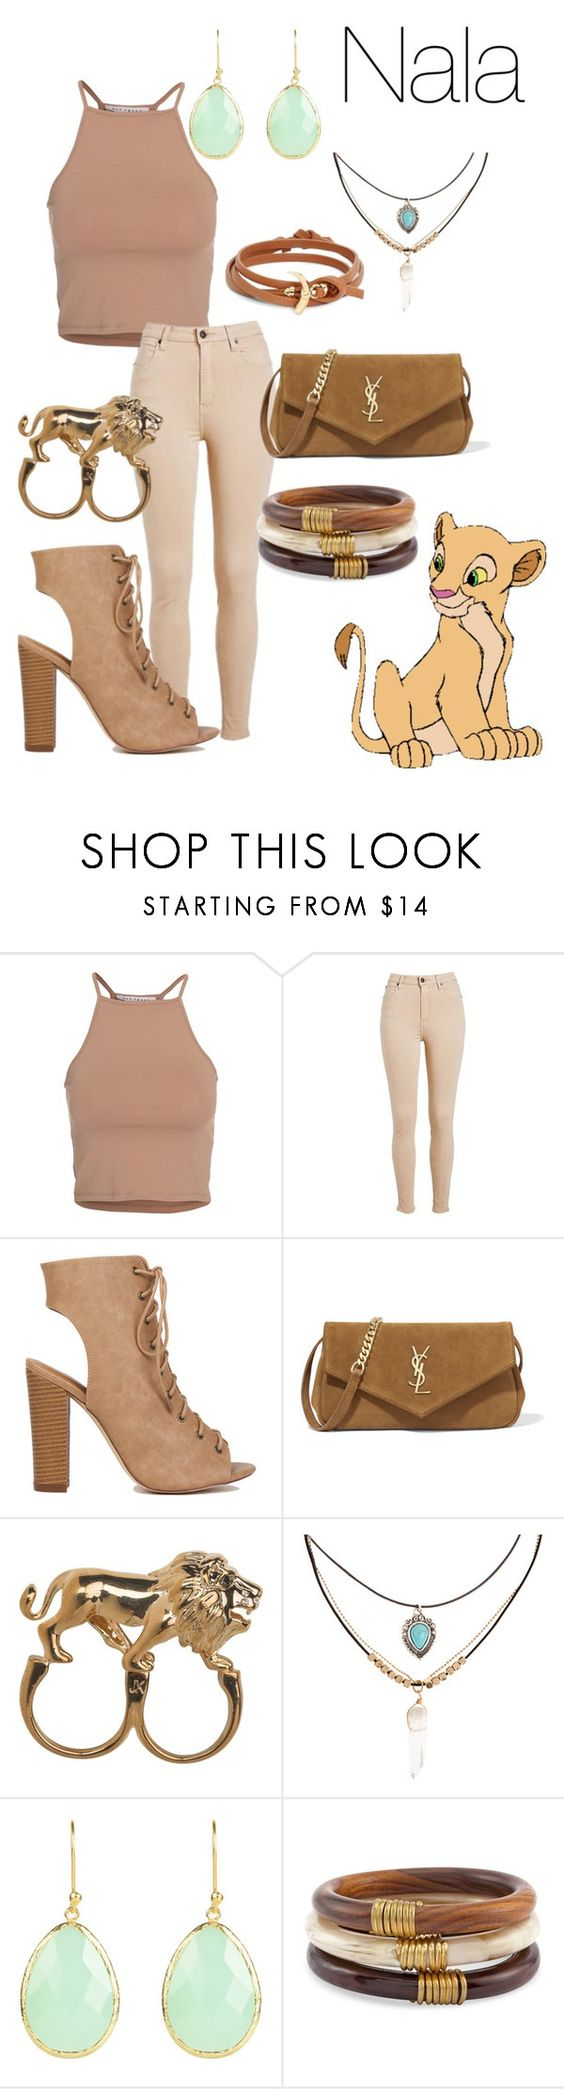 """""""Nala"""" by lauren-e-carroll ❤ liked on Polyvore featuring NLY Trend, Yves Saint Laurent, Stussy, Accessorize, Chico's, Tory Burch, disney, disneybound, Nala and thelionking"""